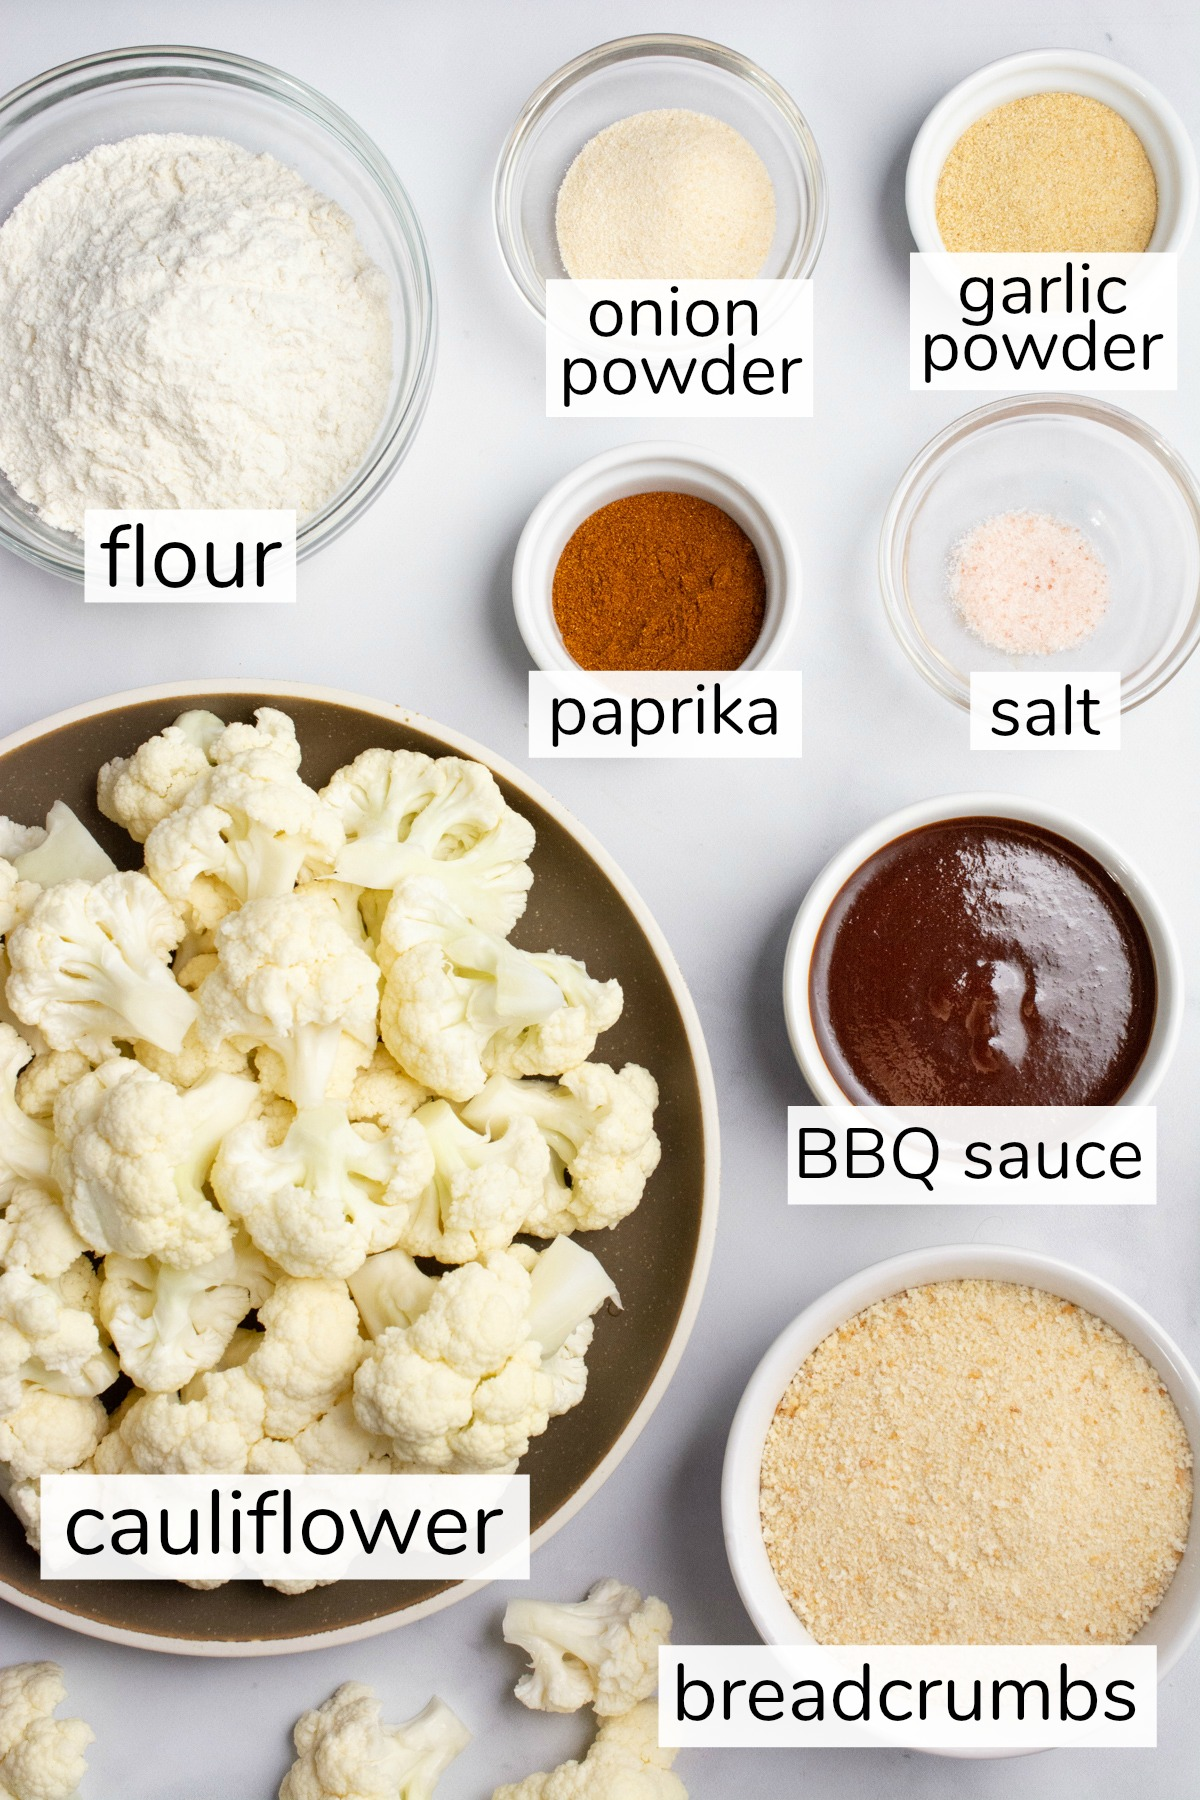 Labeled ingredients for BBQ cauliflower wings.